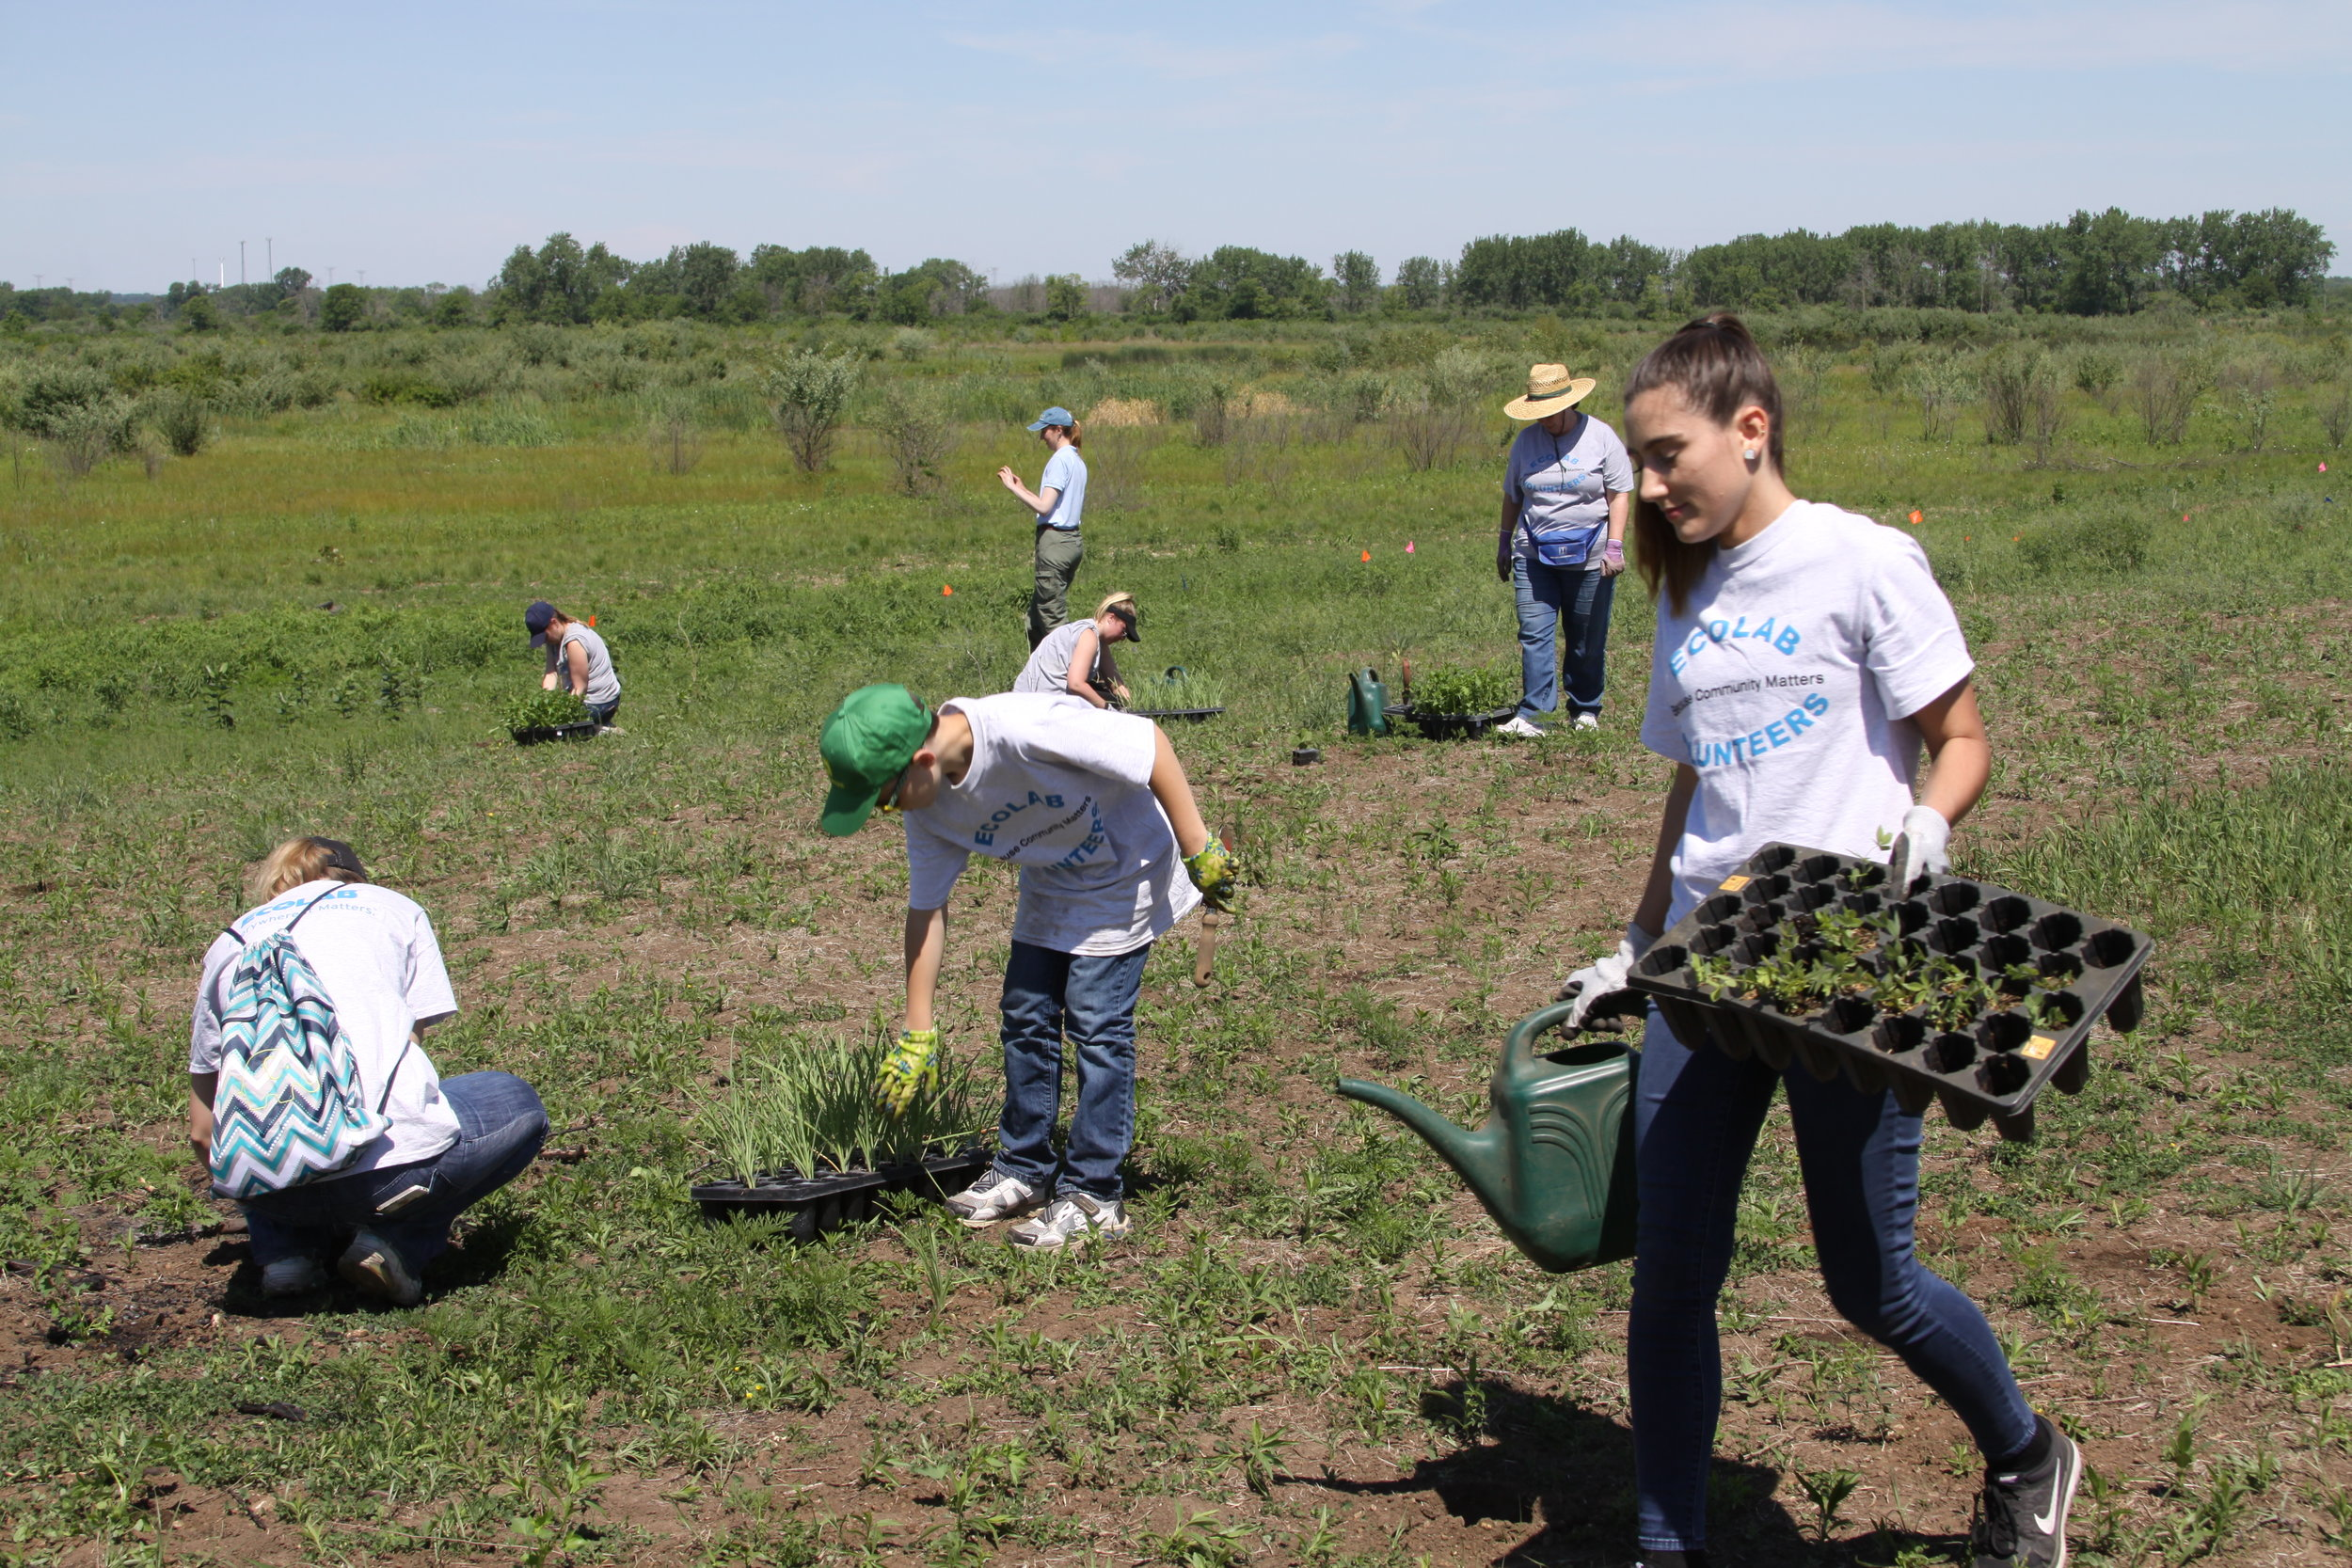 Ecolab employees and their families planting plugs at Midewin's Secret Ridge area. Photo by Vera Leopold/TWI.